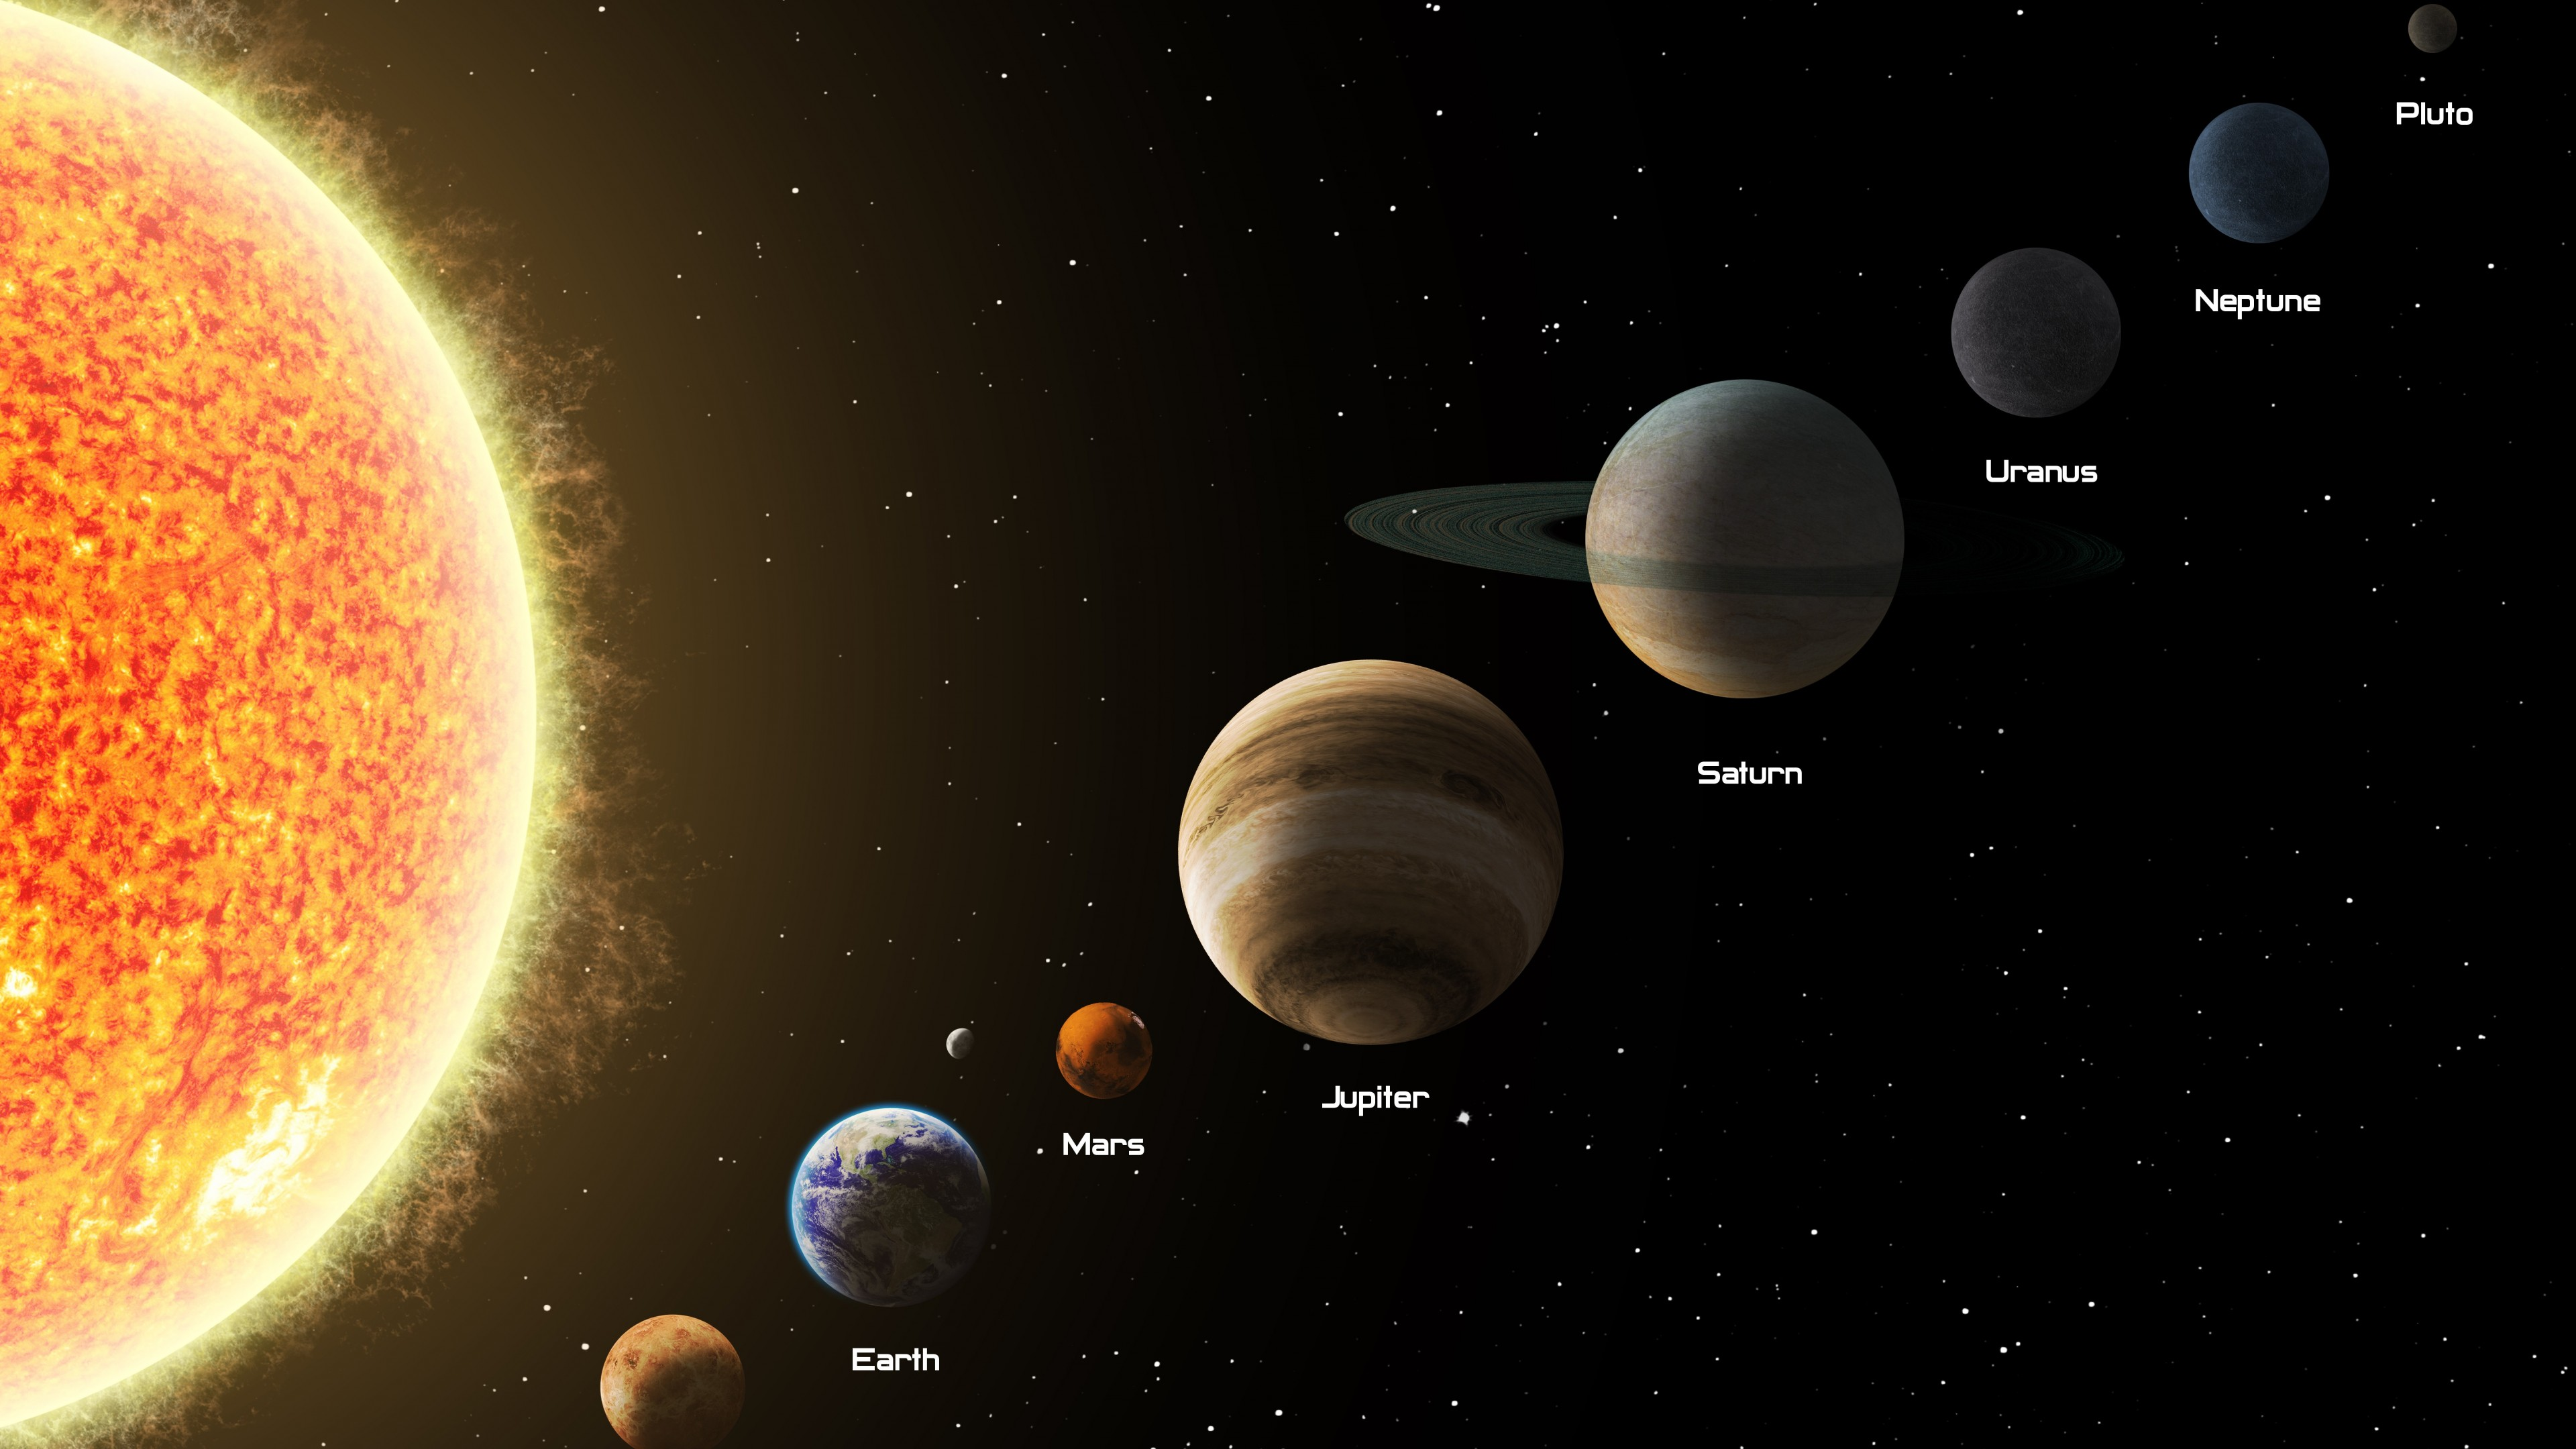 A Tediously Accurate Map of the Solar System Josh Worth Show me the pictures of solar system